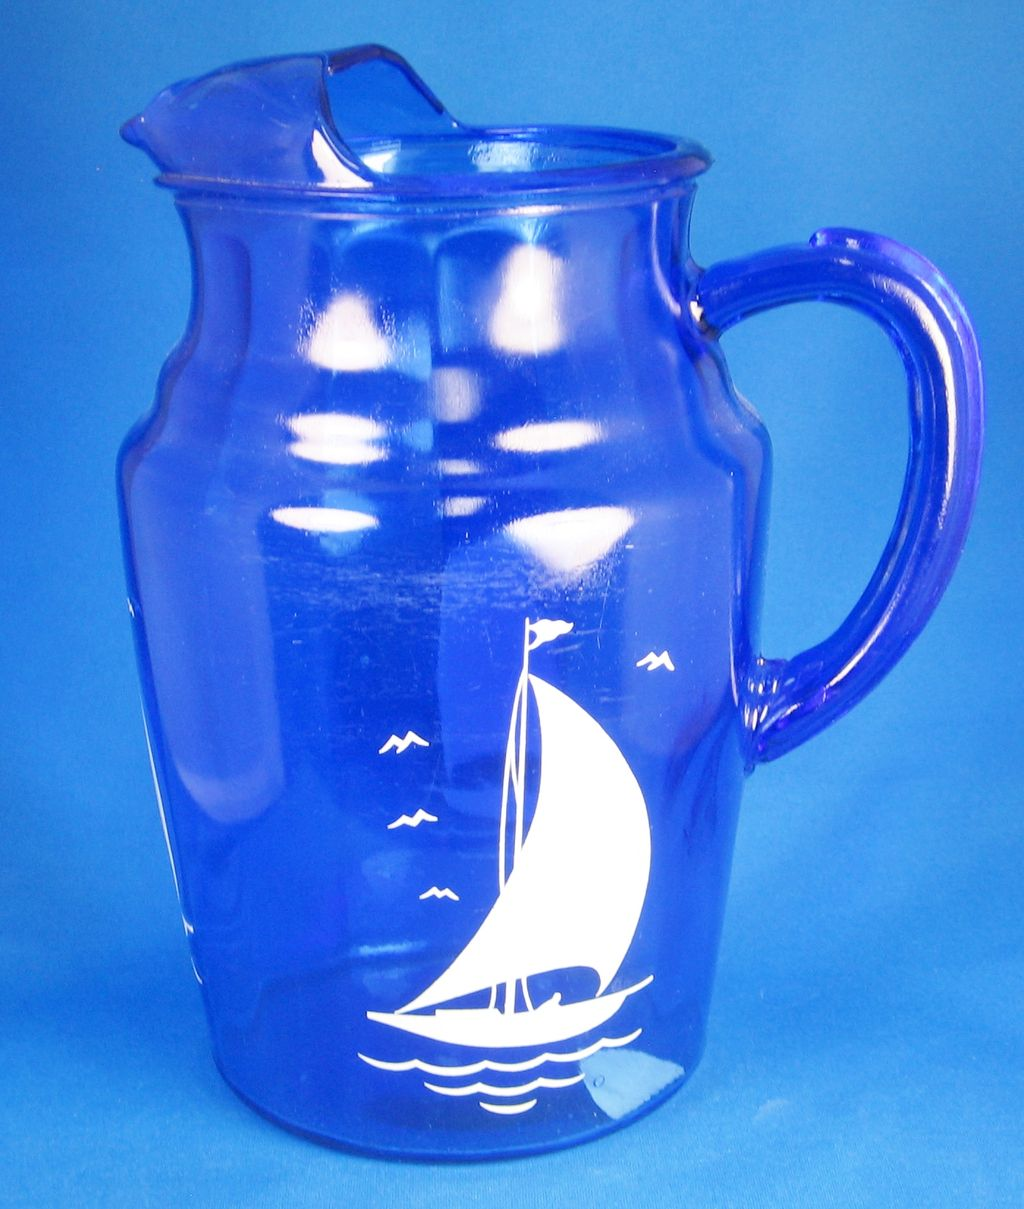 1930s Depression Glass Cobalt Blue Hazel Atlas Sailboat Patterned Pitcher and Glasses